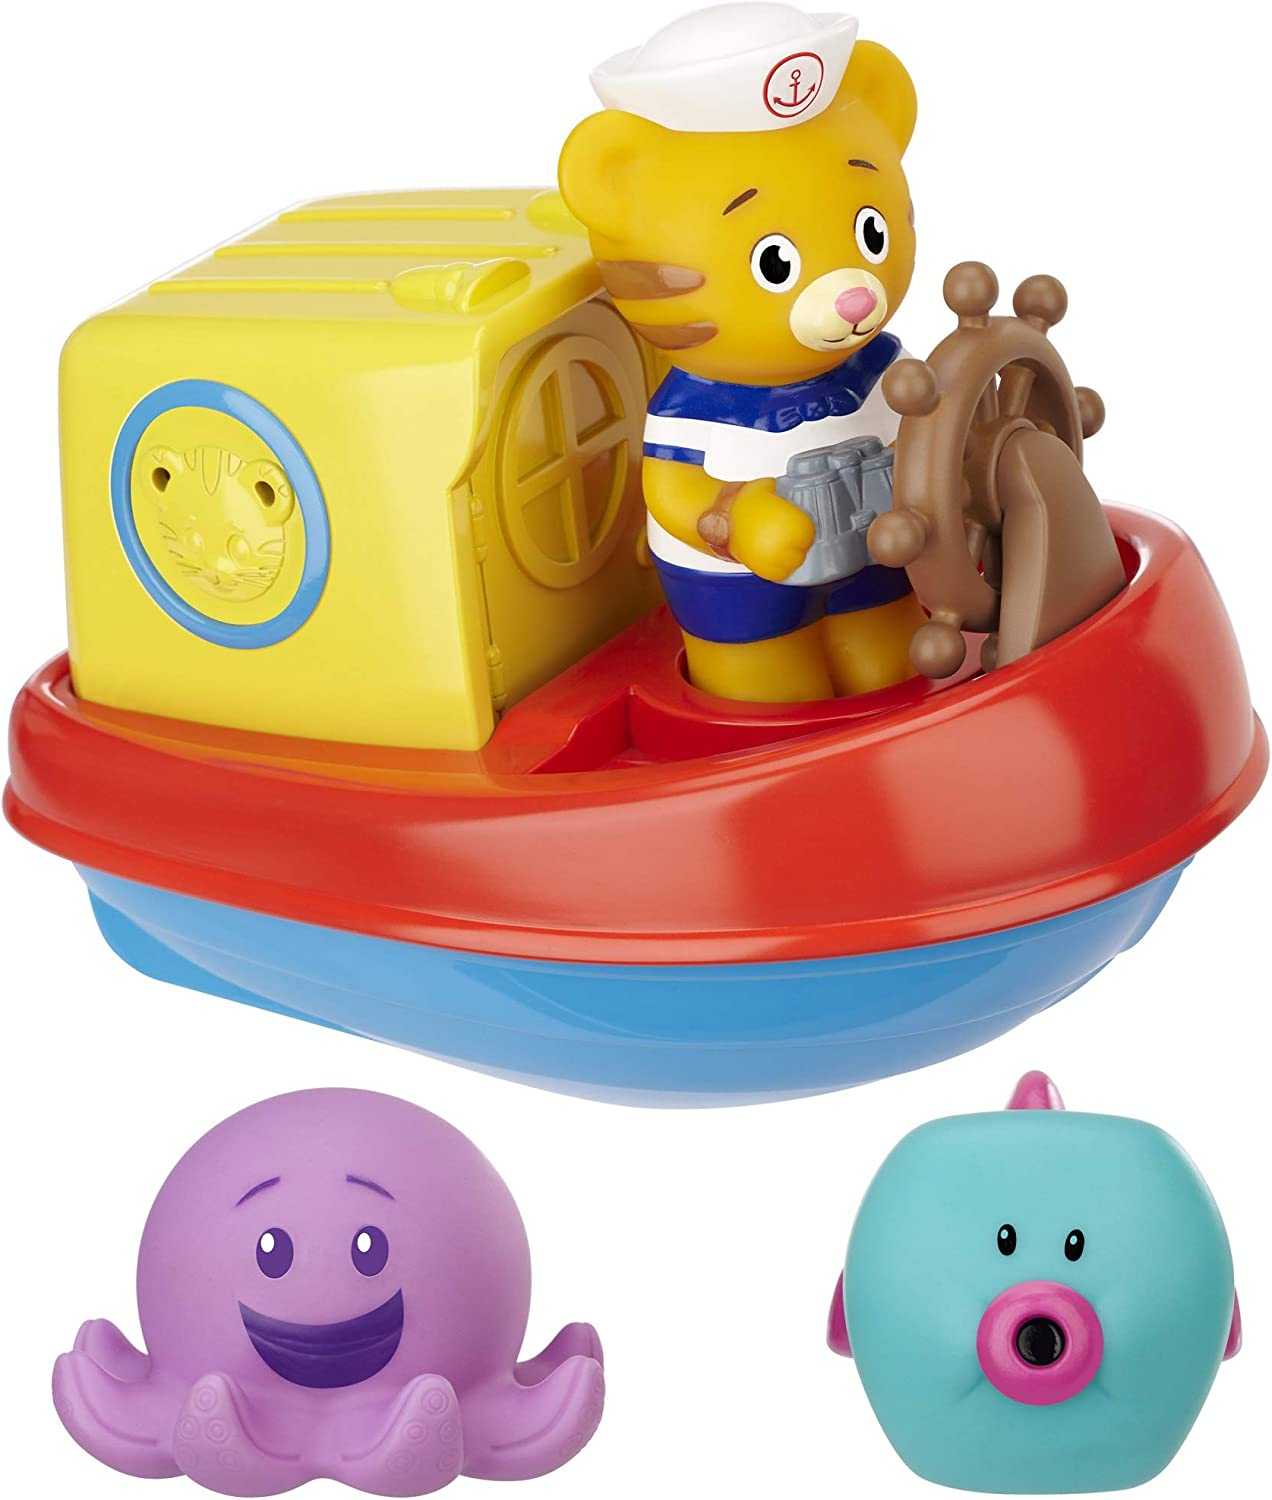 Baby Bath Tub Toy Daniel Tiger's Neighborhood